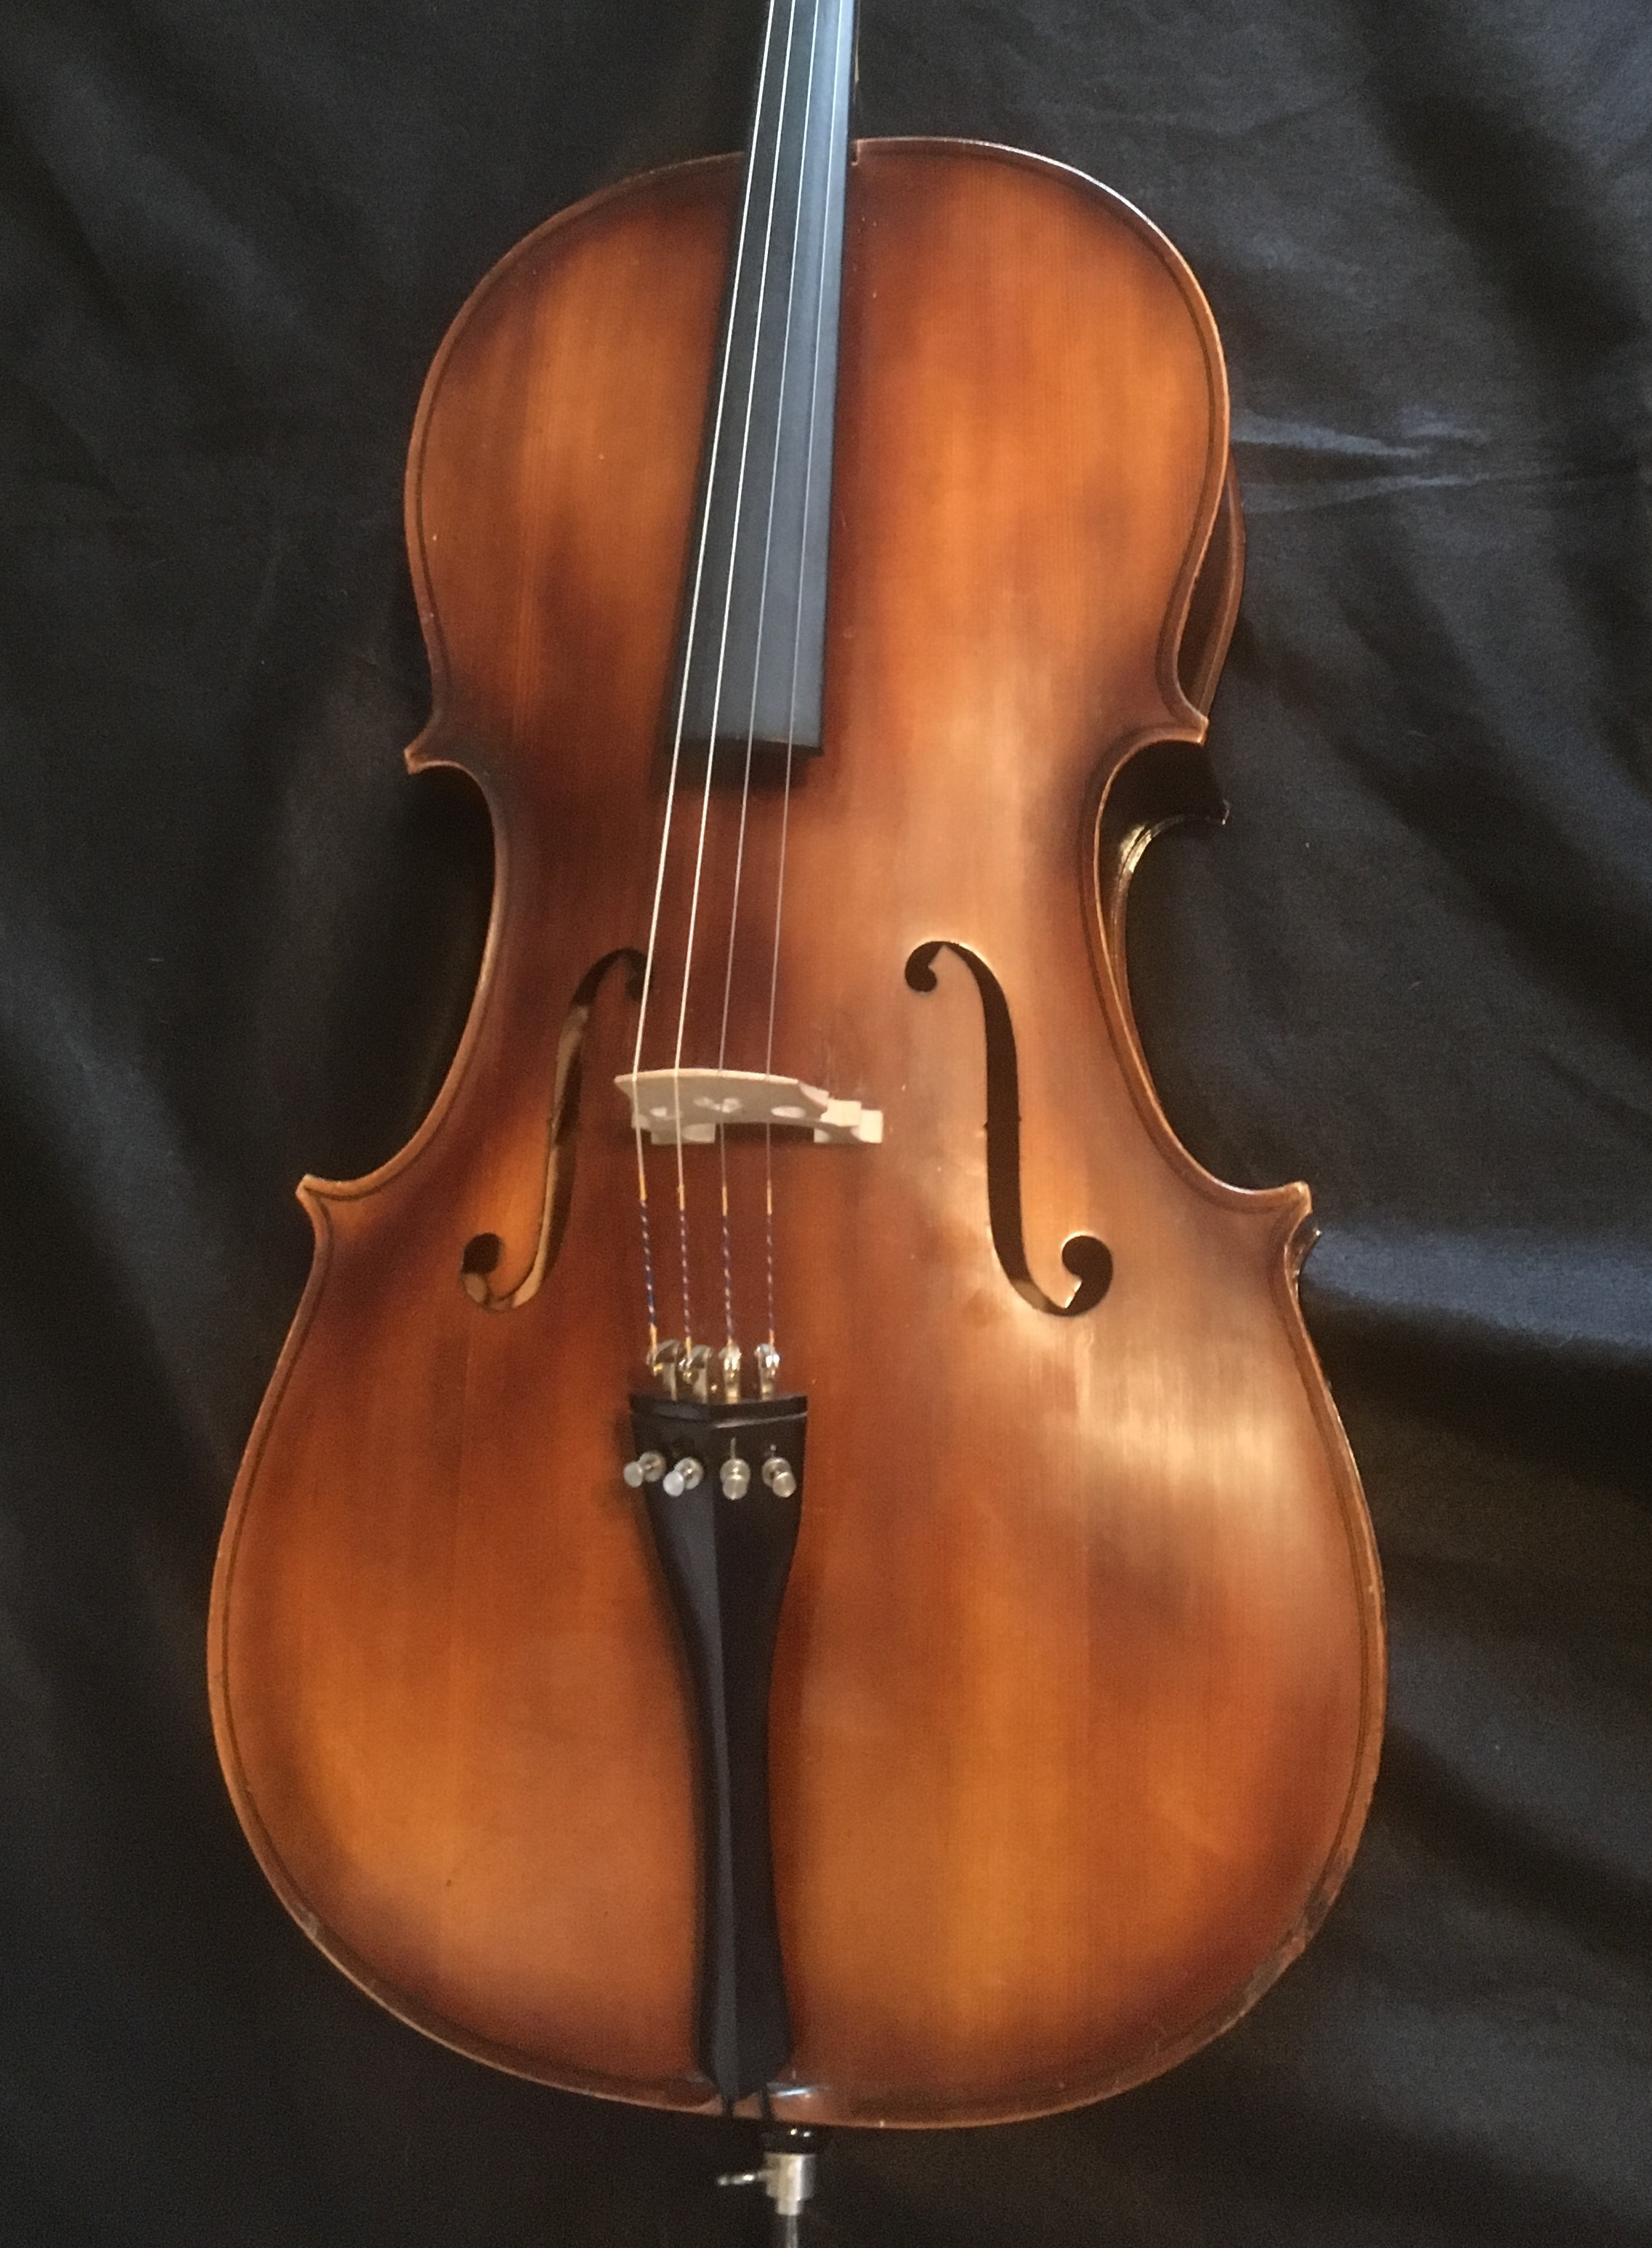 1965 Hungarian Cell w/ Original Case and Vintage bow